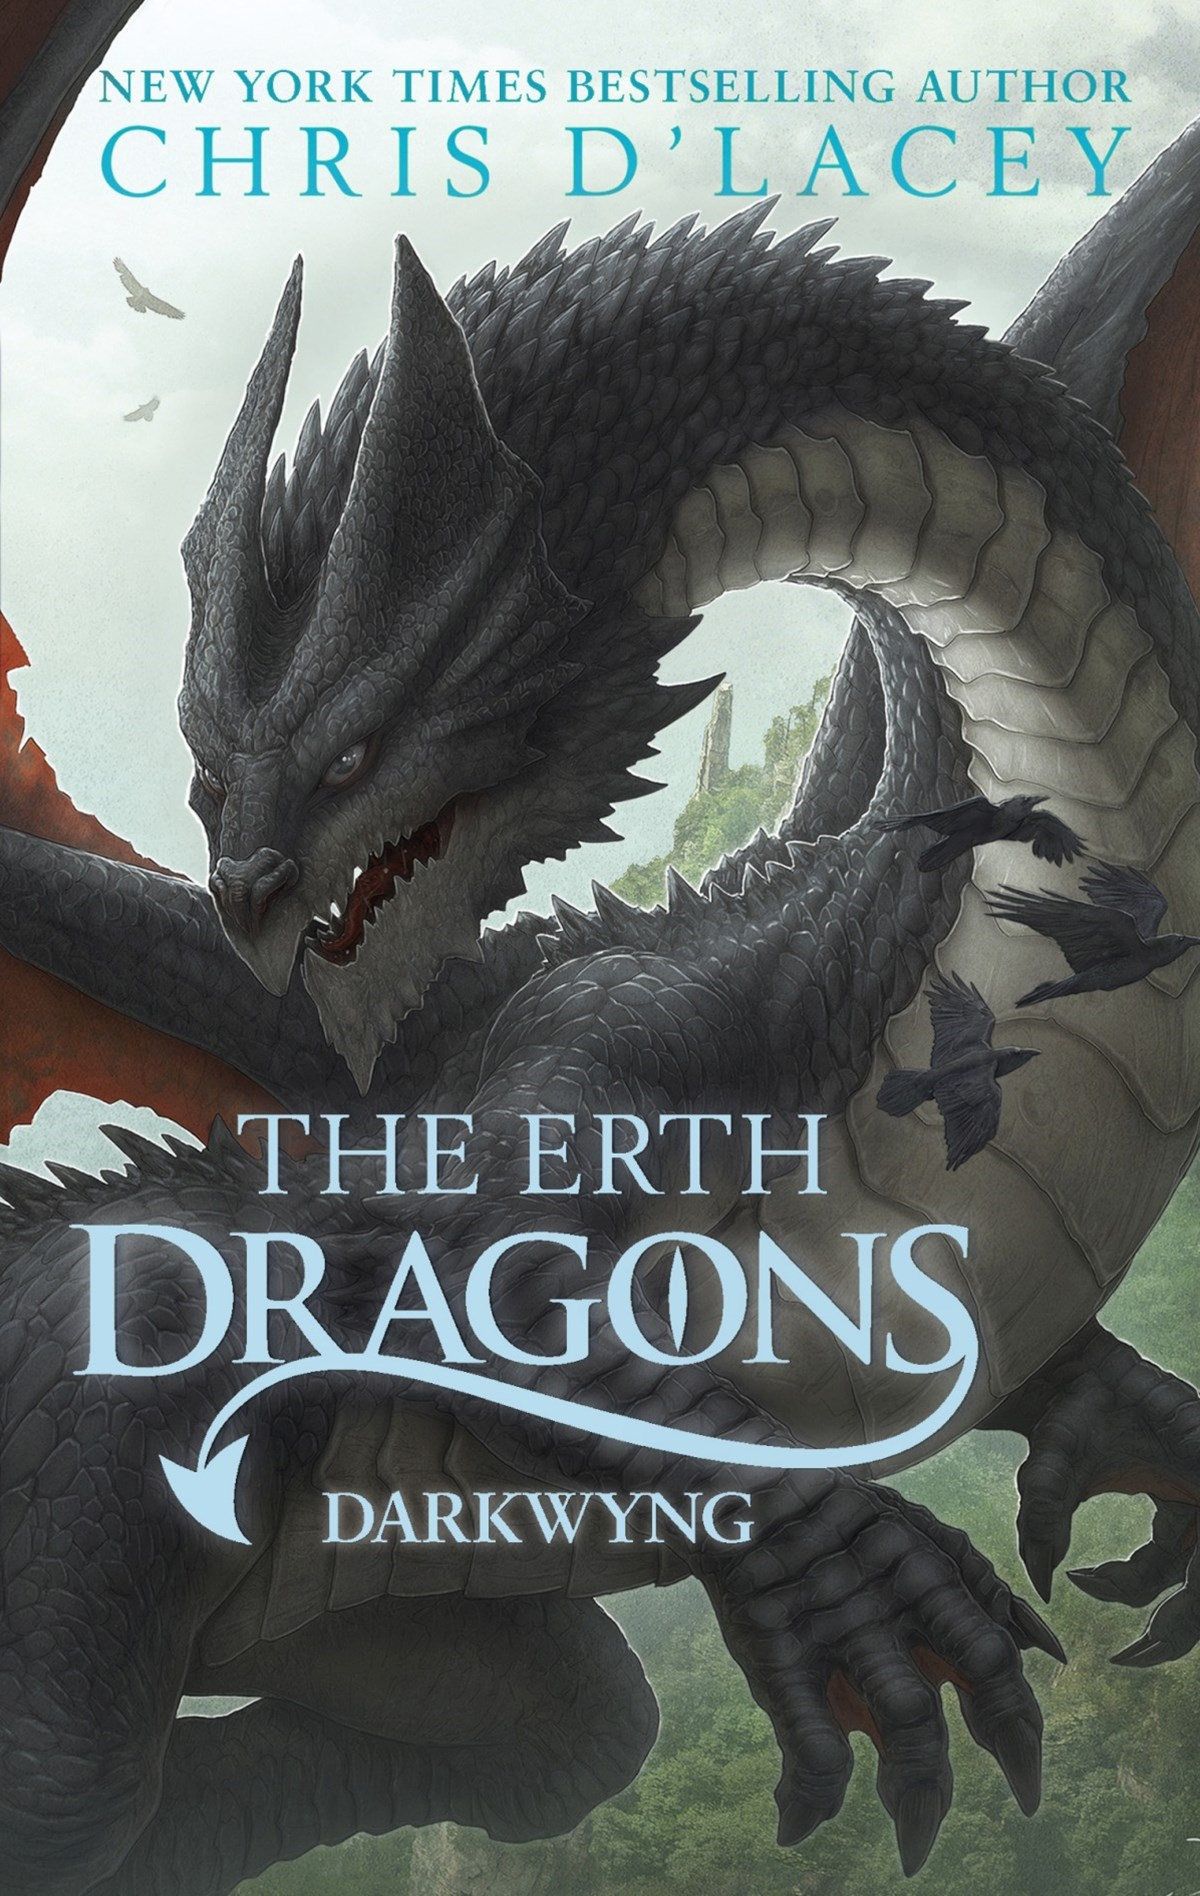 Darkwyng (The Erth Dragons Book 2)